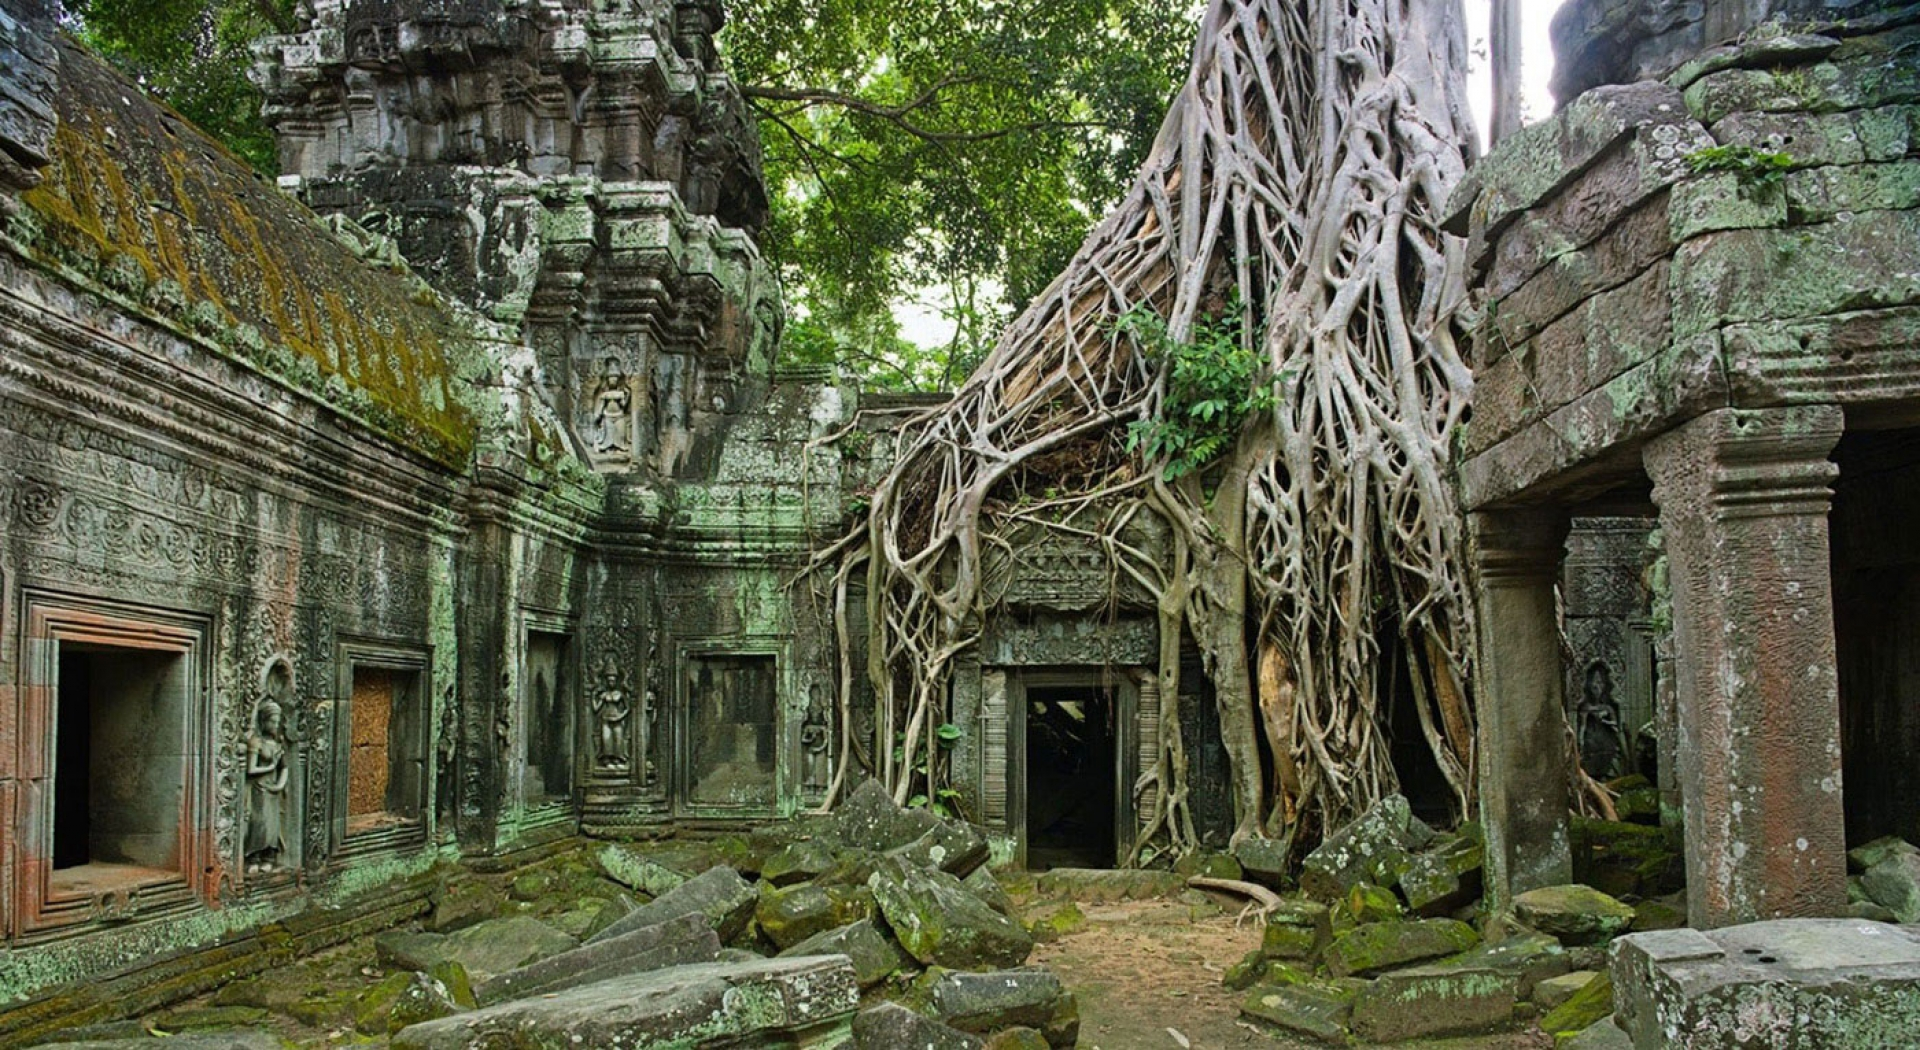 Ta Prohm,<br/> The jungle temple